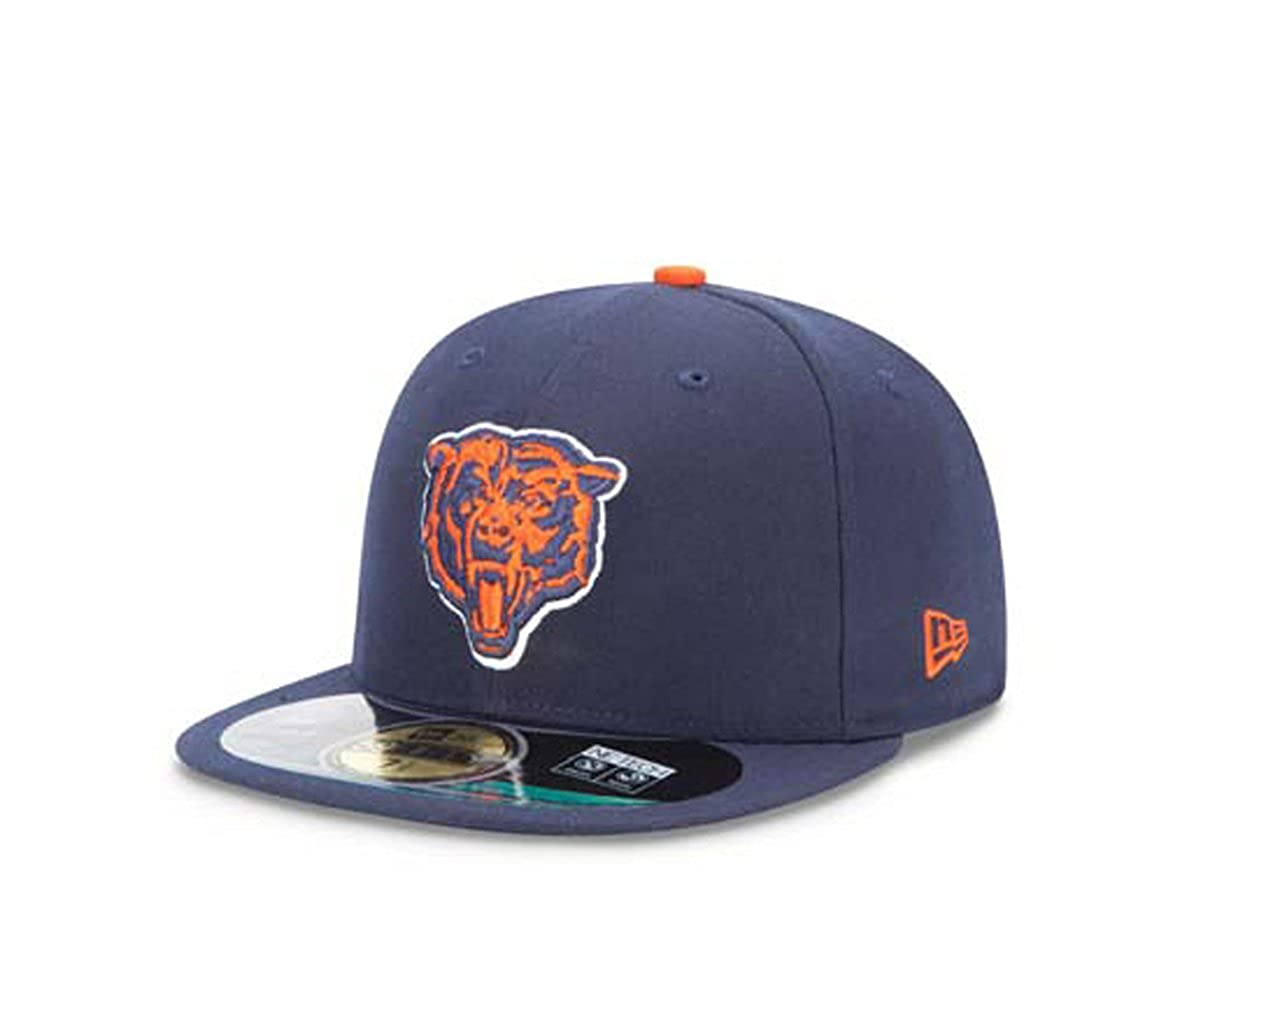 8ecdba70806520 Amazon.com: New Era Chicago Bears On Field Cap Navy 59fifty Basic Fitted  Basecap Kappe Men: Clothing